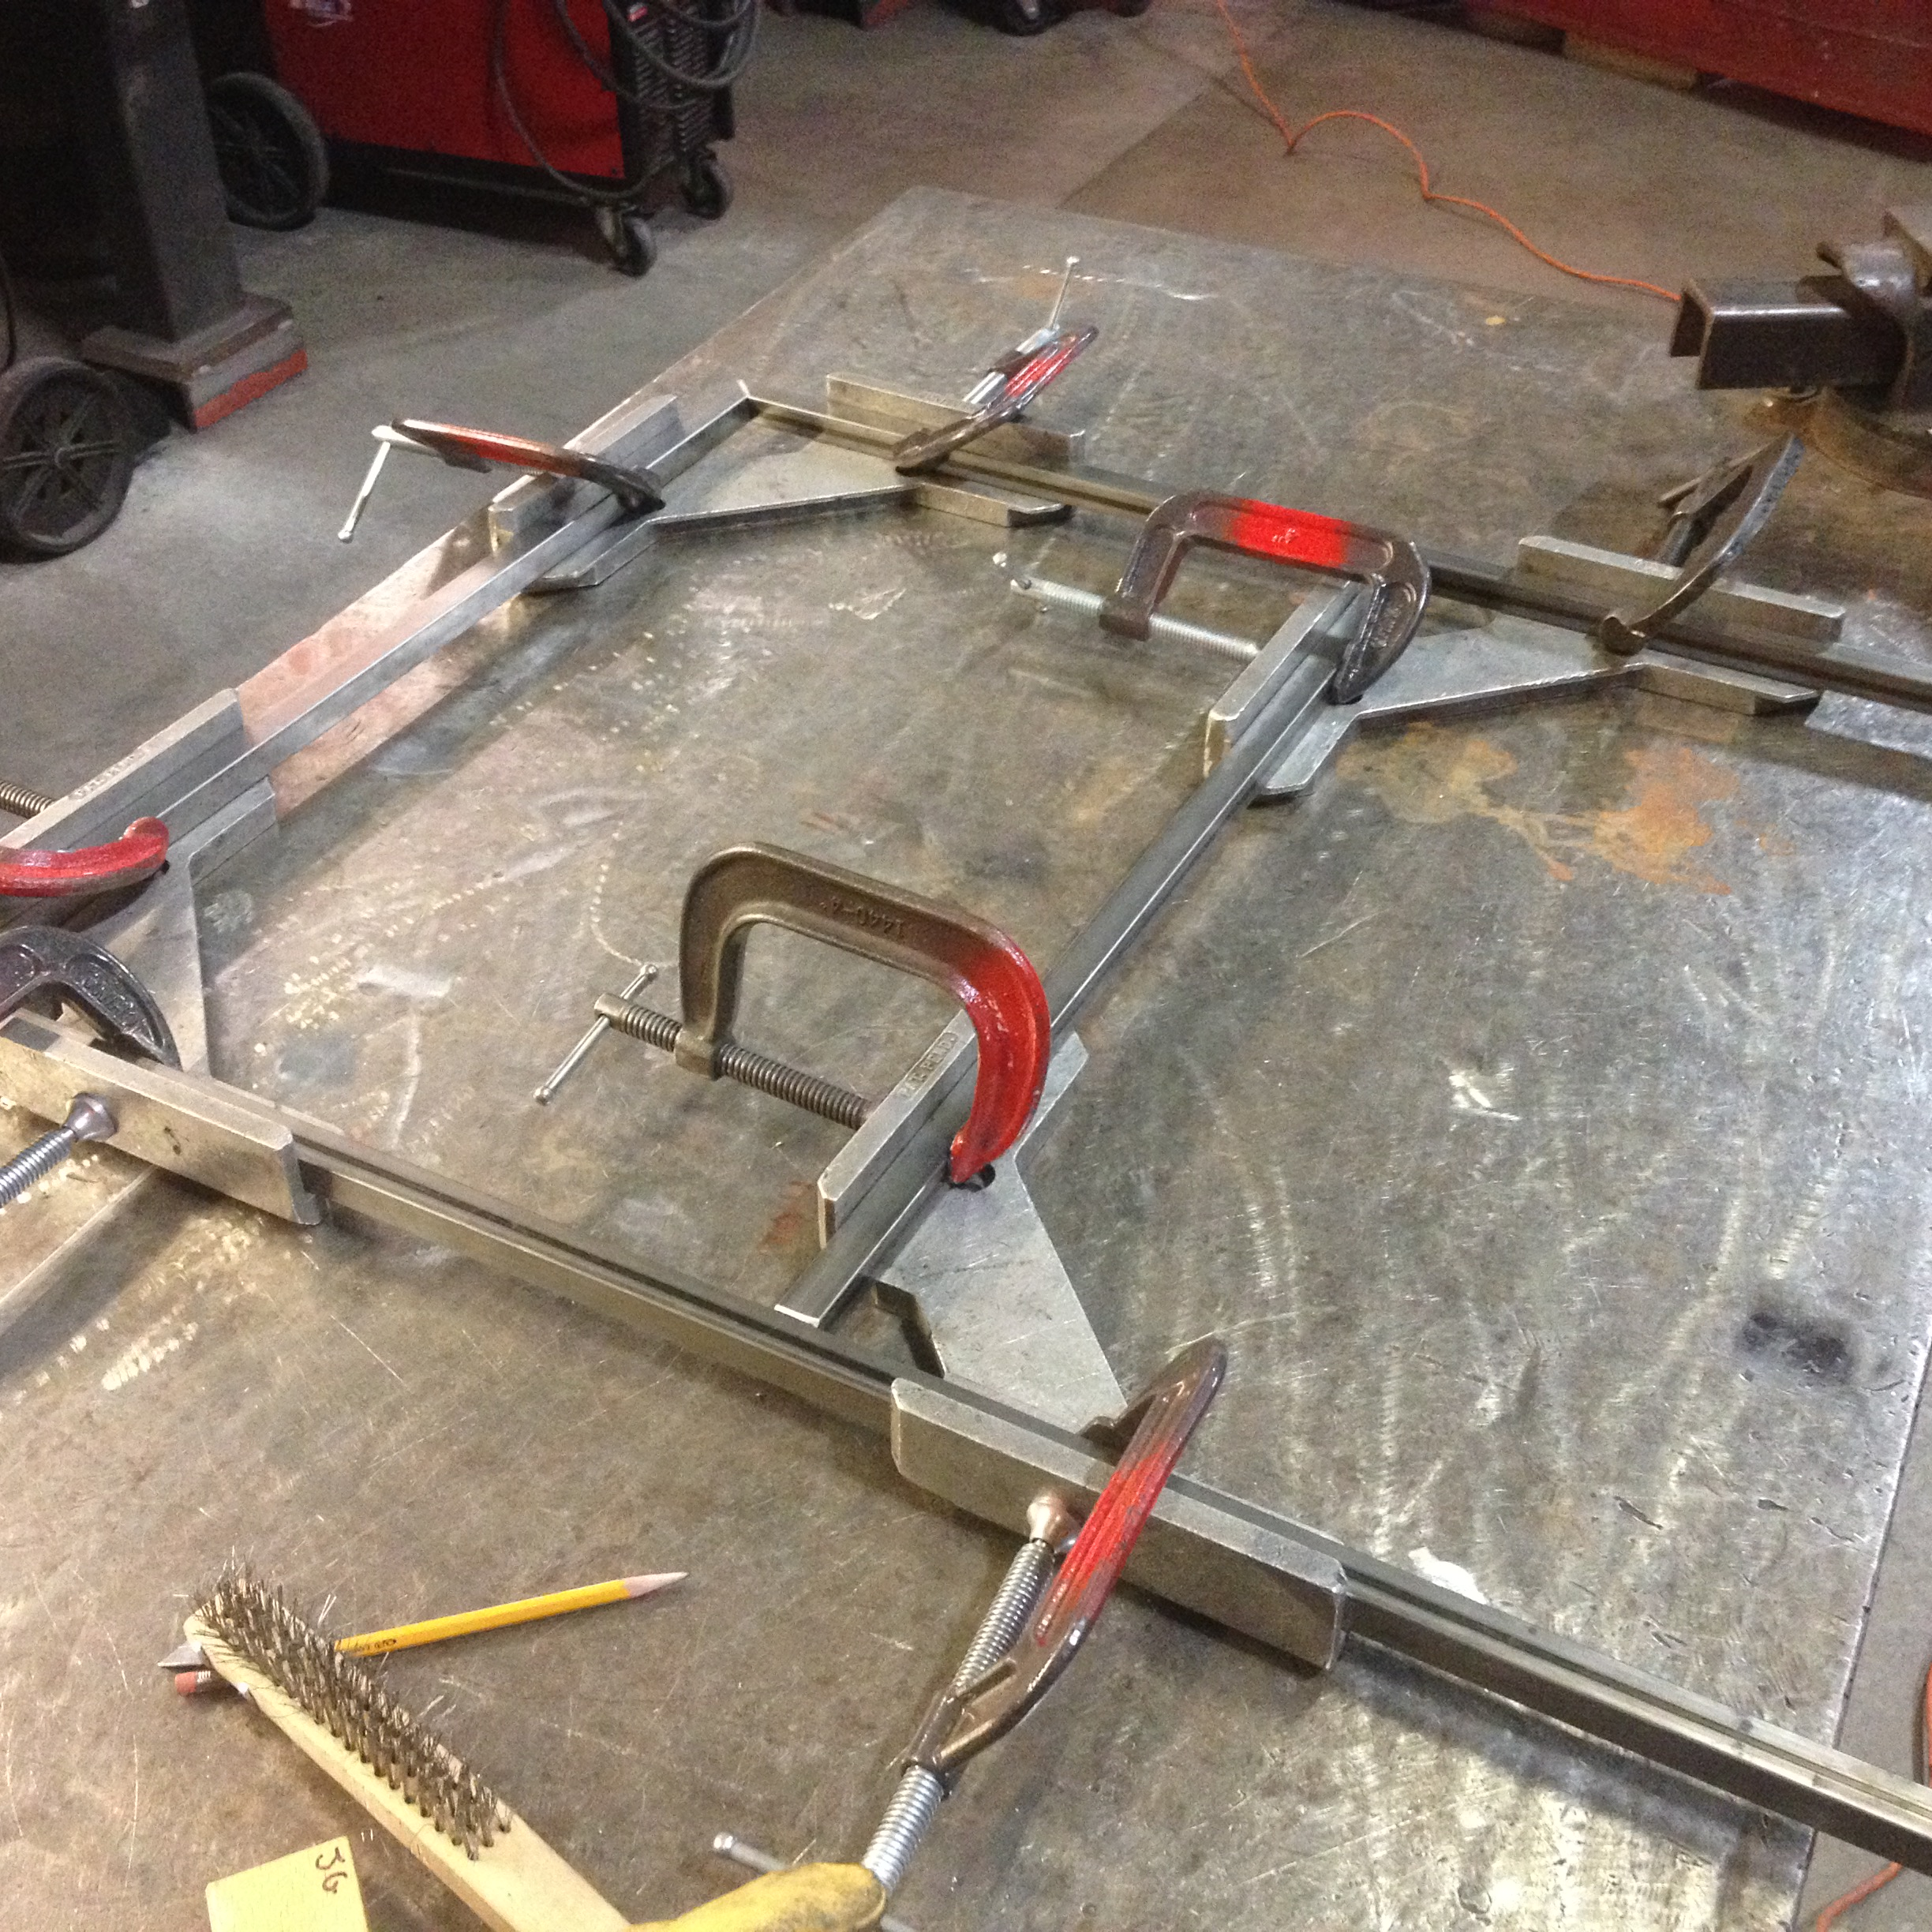 Clamping up the frames in preparation for welding.